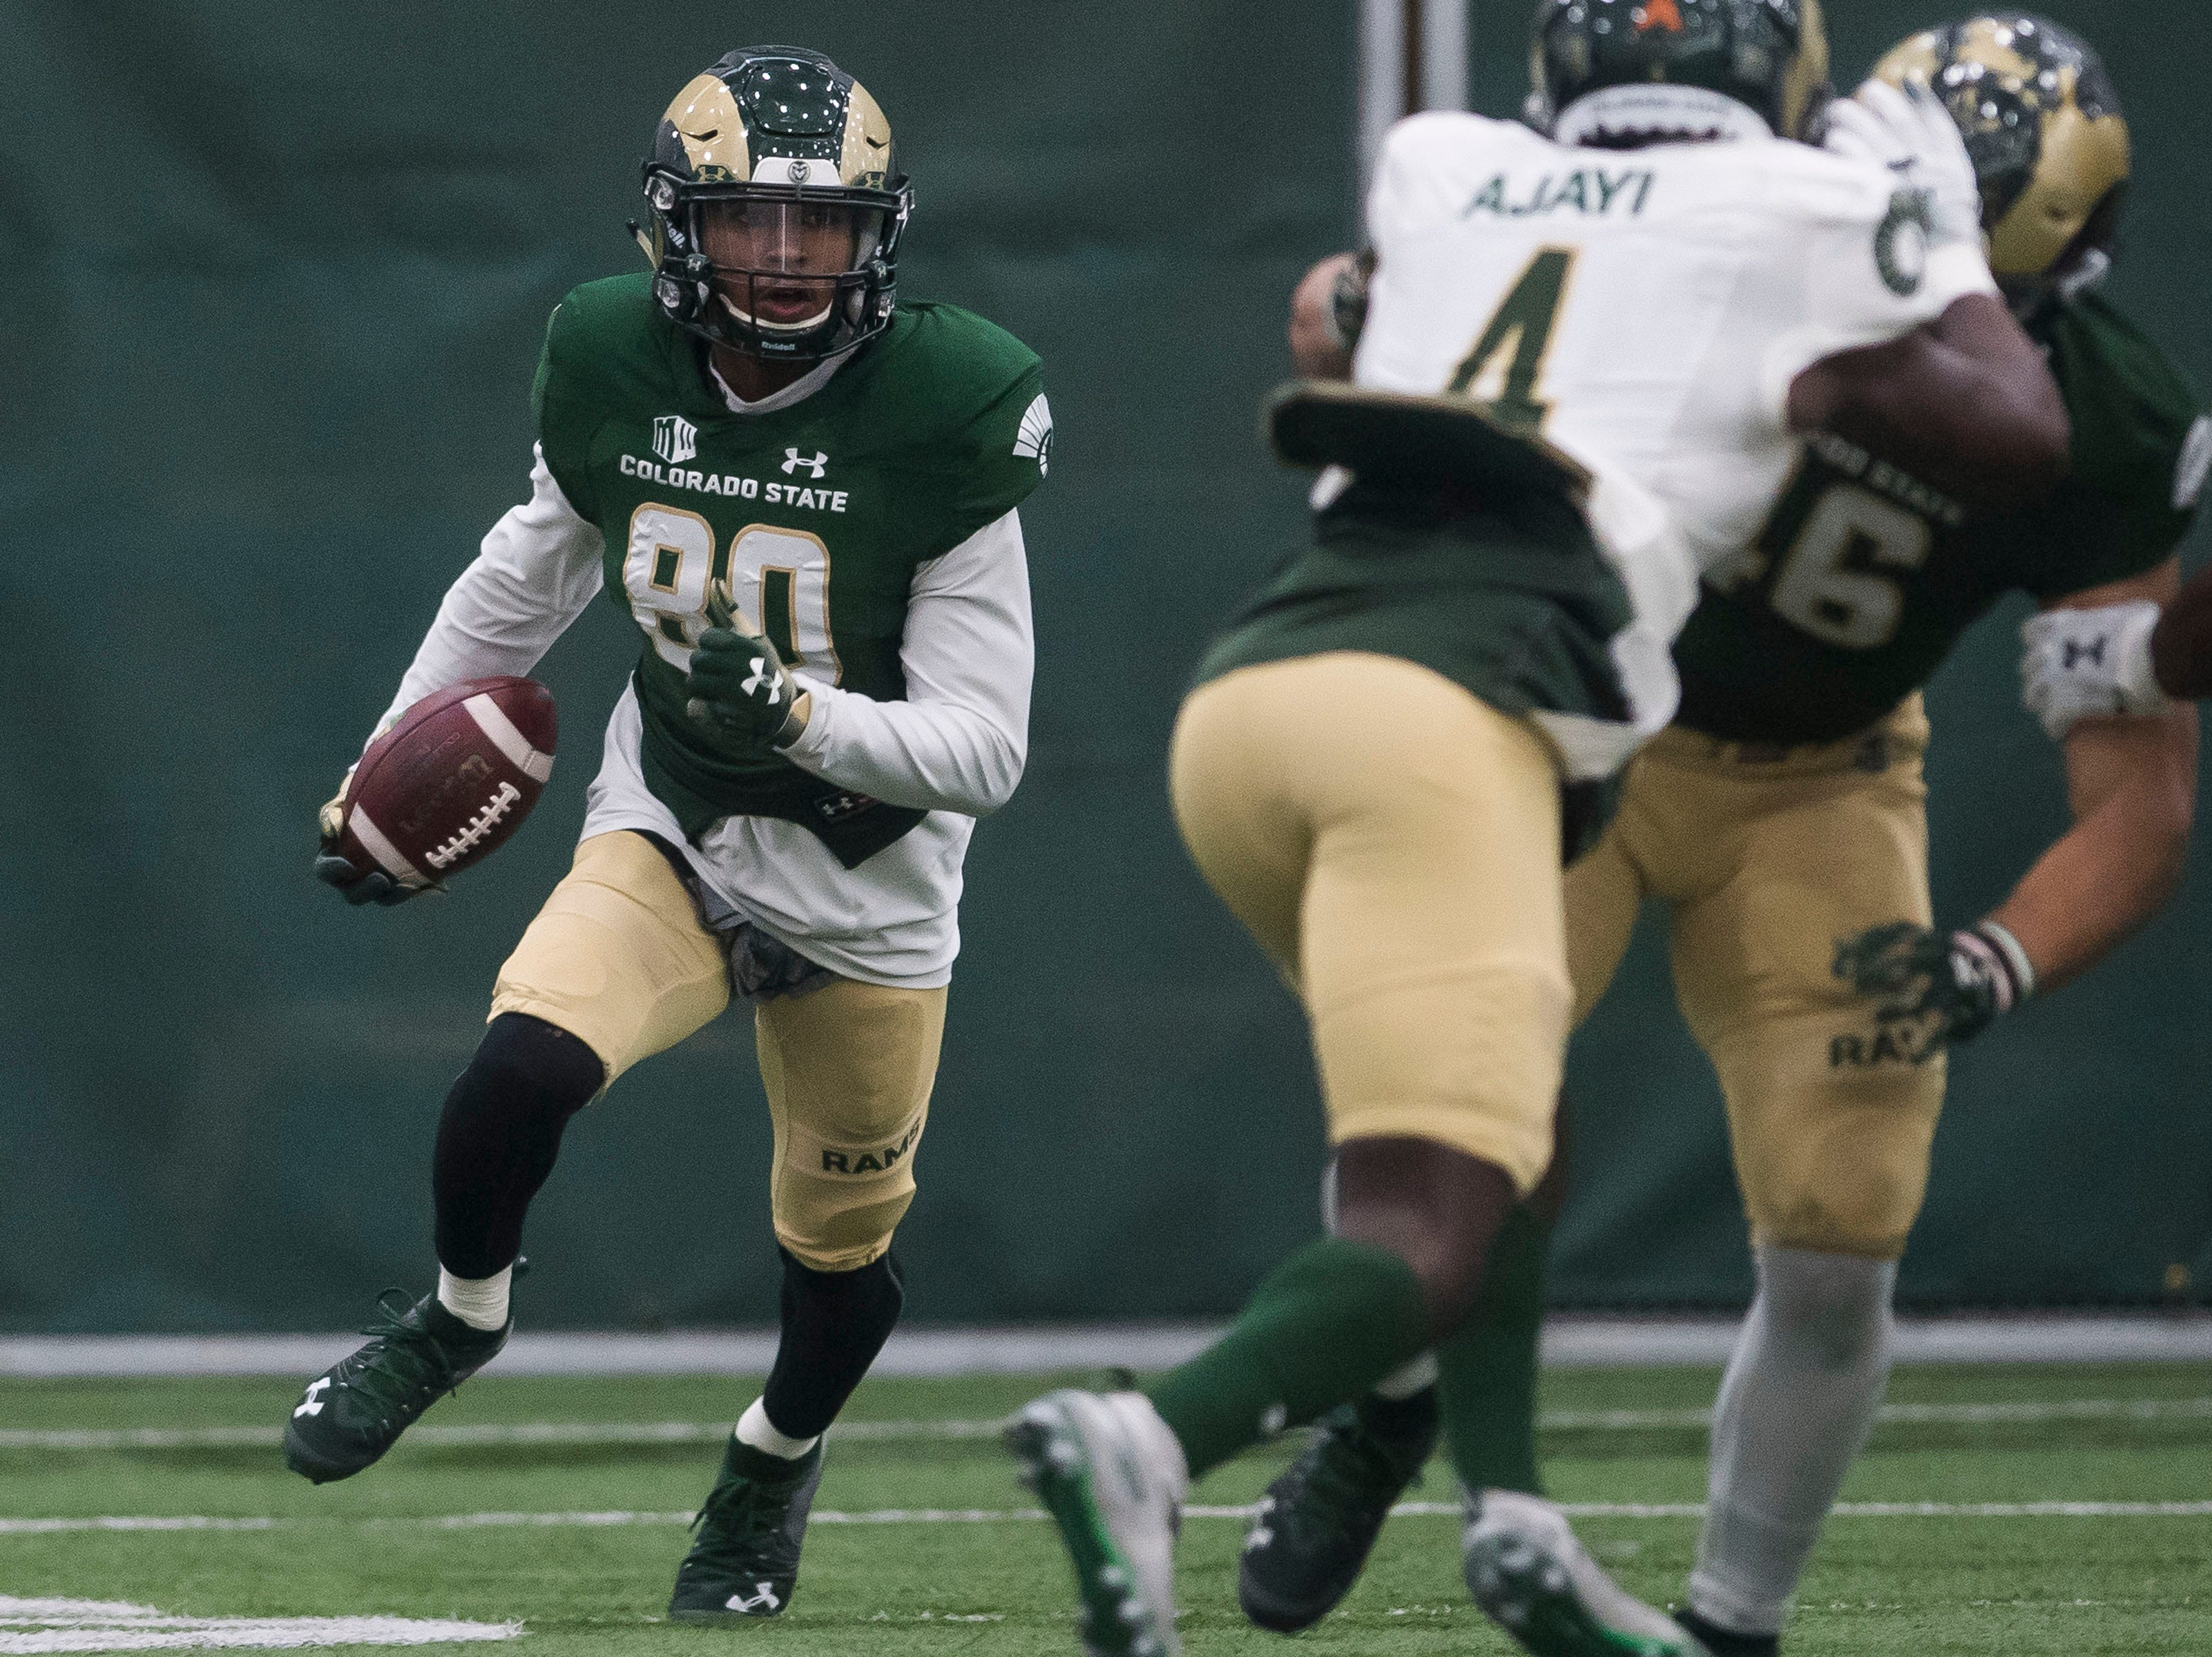 CSU sophomore receiver Nikko Hall (80) turns upfield after a reception during CSU's Spring game on Thursday, March 14, 2019, at their indoor practice facility in Fort Collins, Colo.